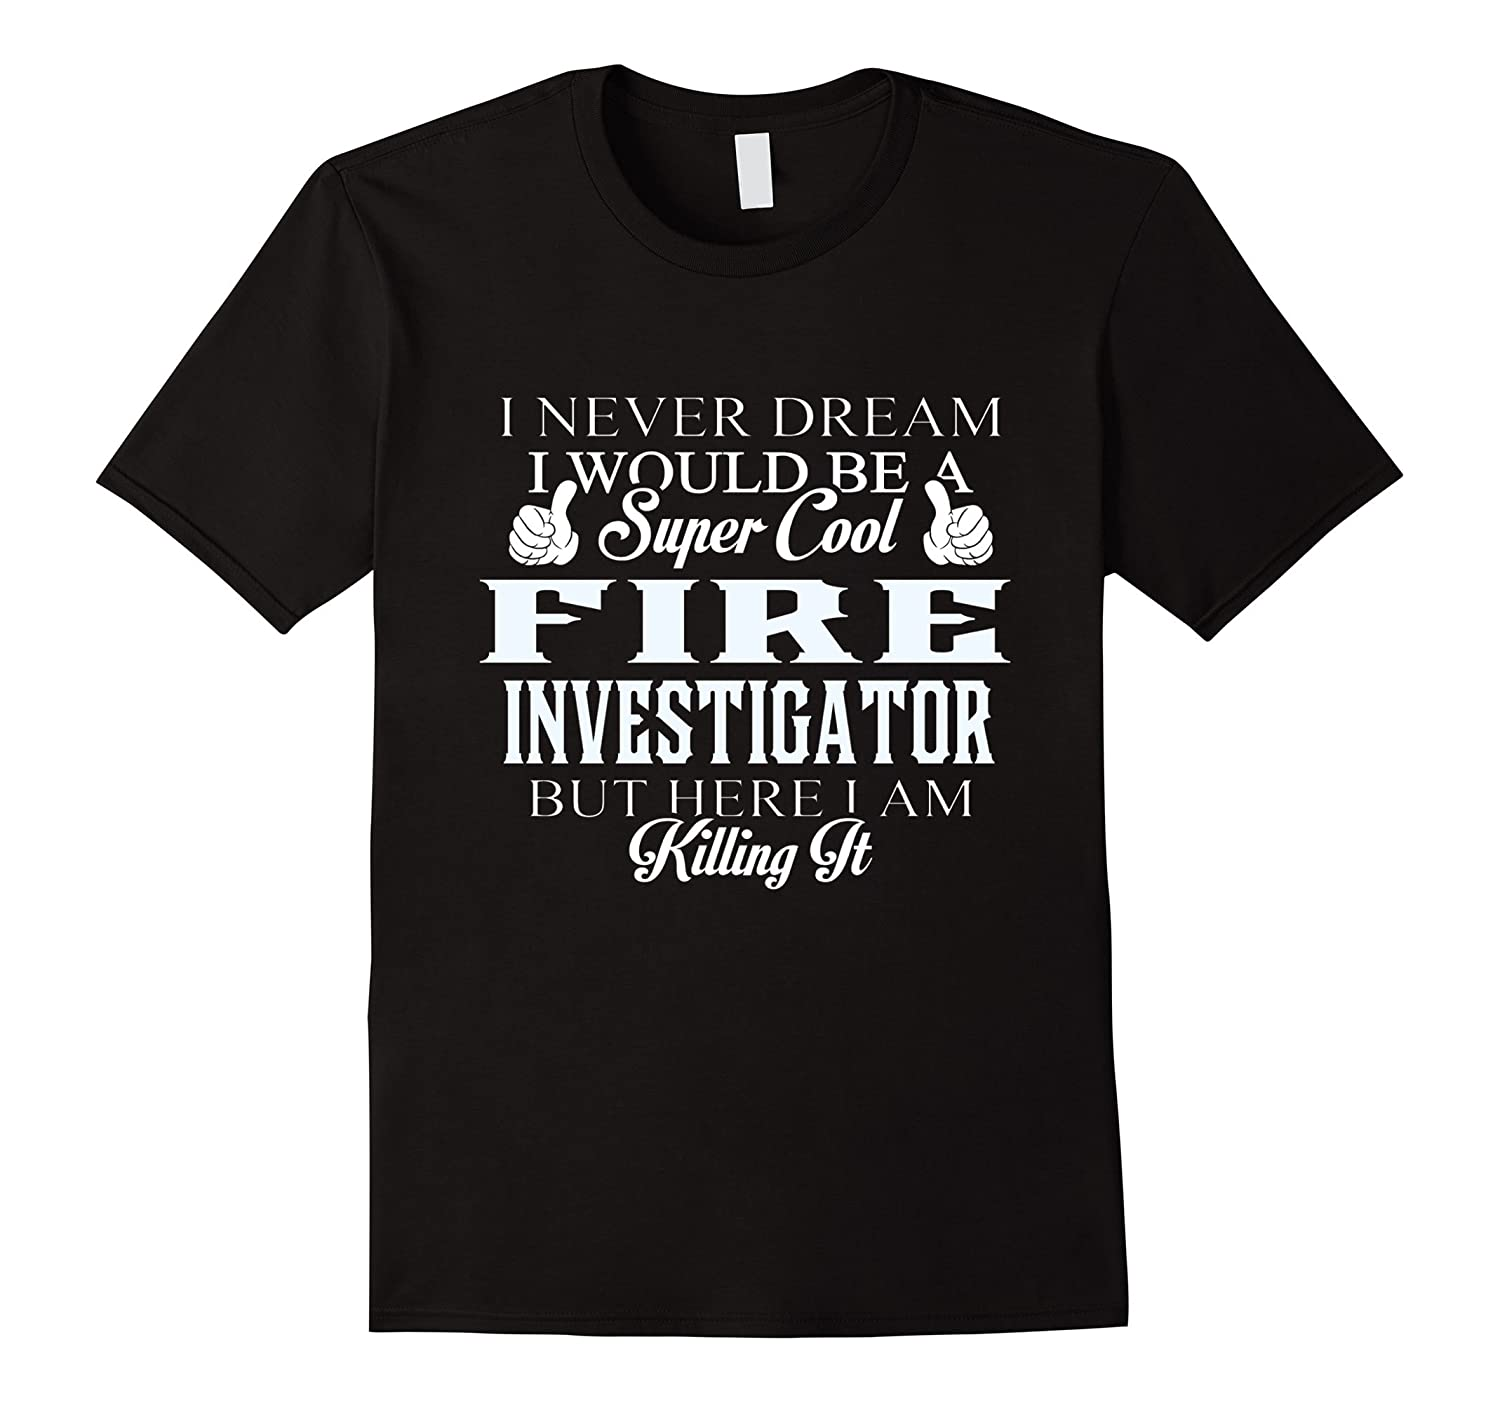 Dreamed would super cool Fire investigator killing it-Vaci